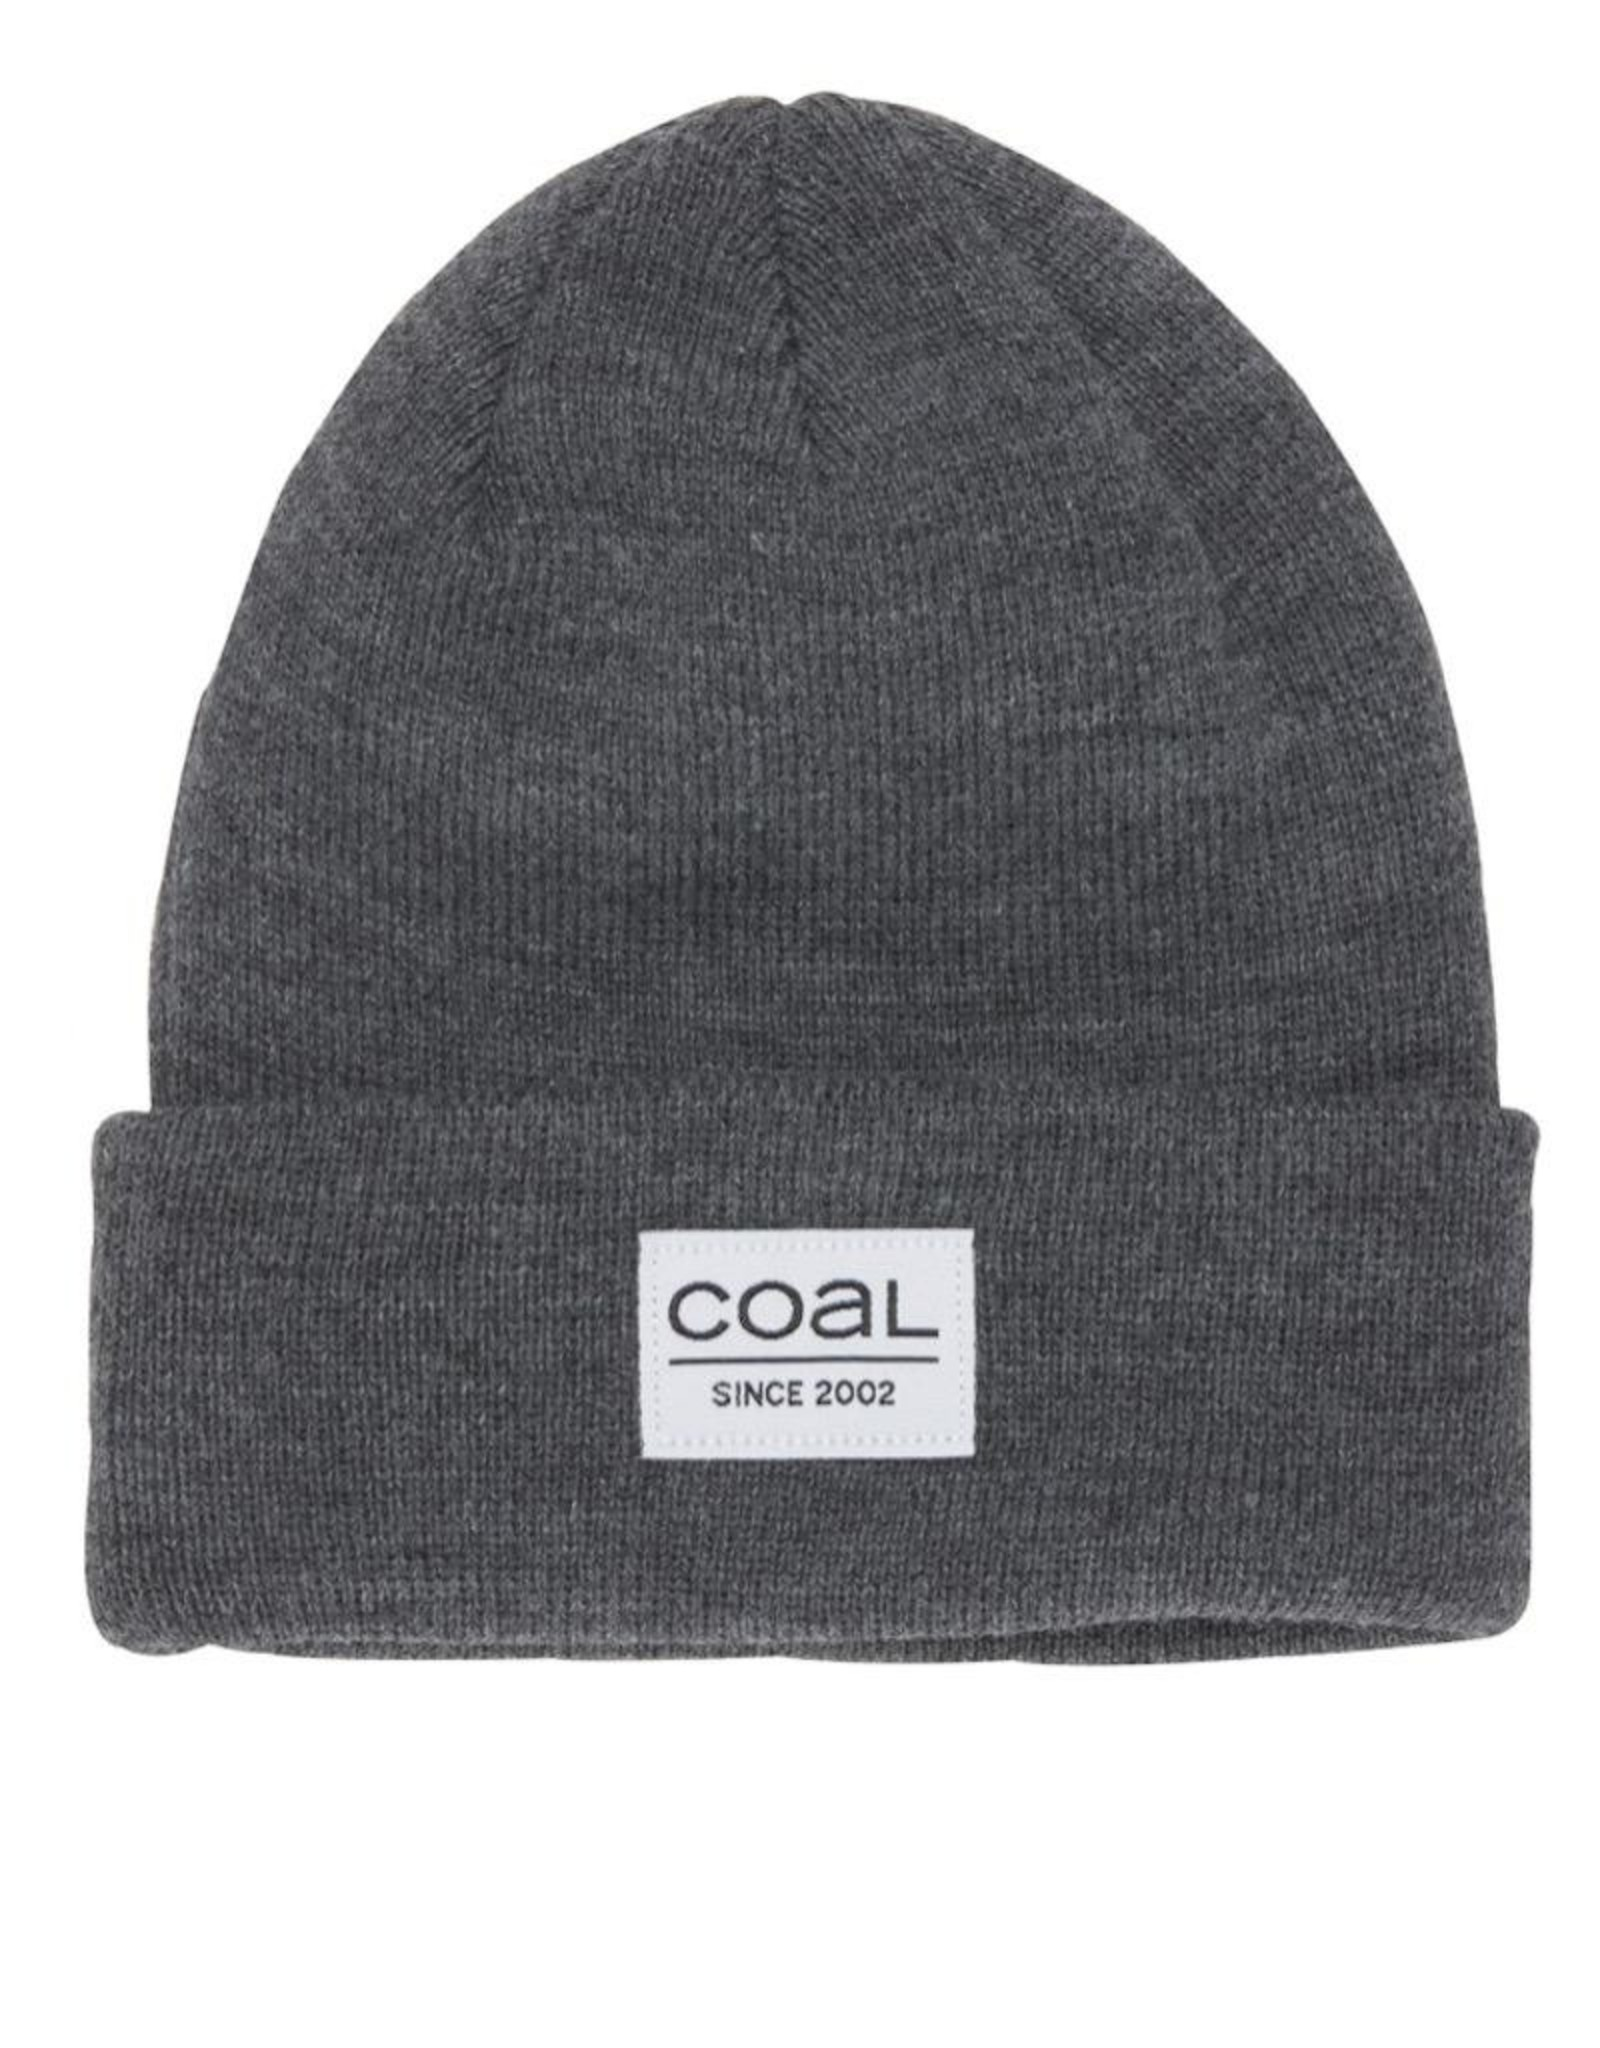 Coal Standard Kids Charcoal Beanie